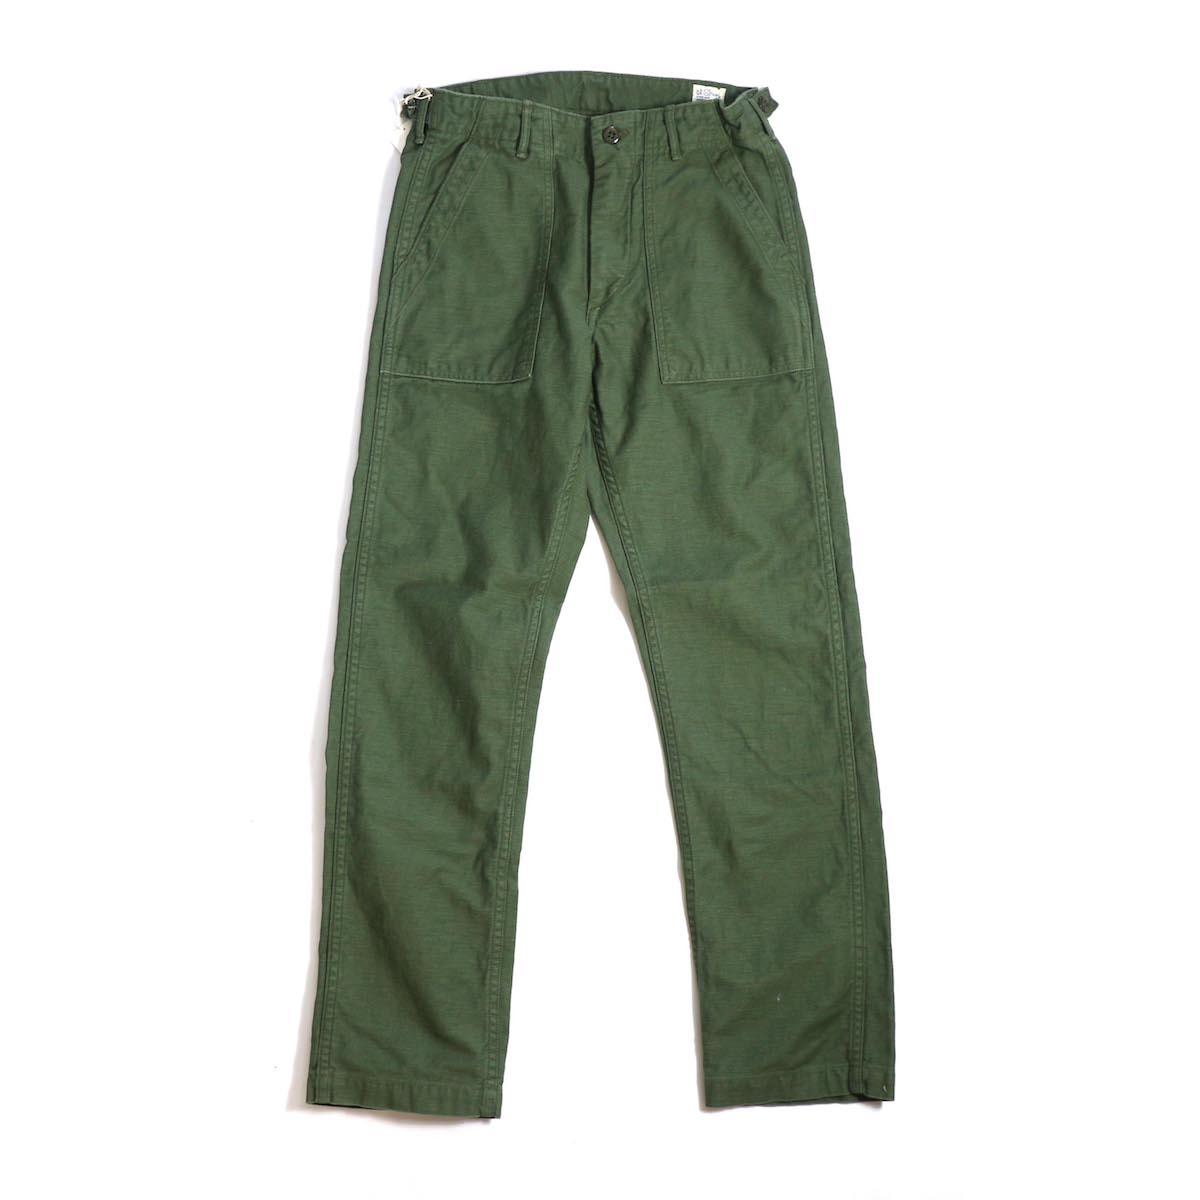 orSlow / SLIM FIT FATIGUE PANTS